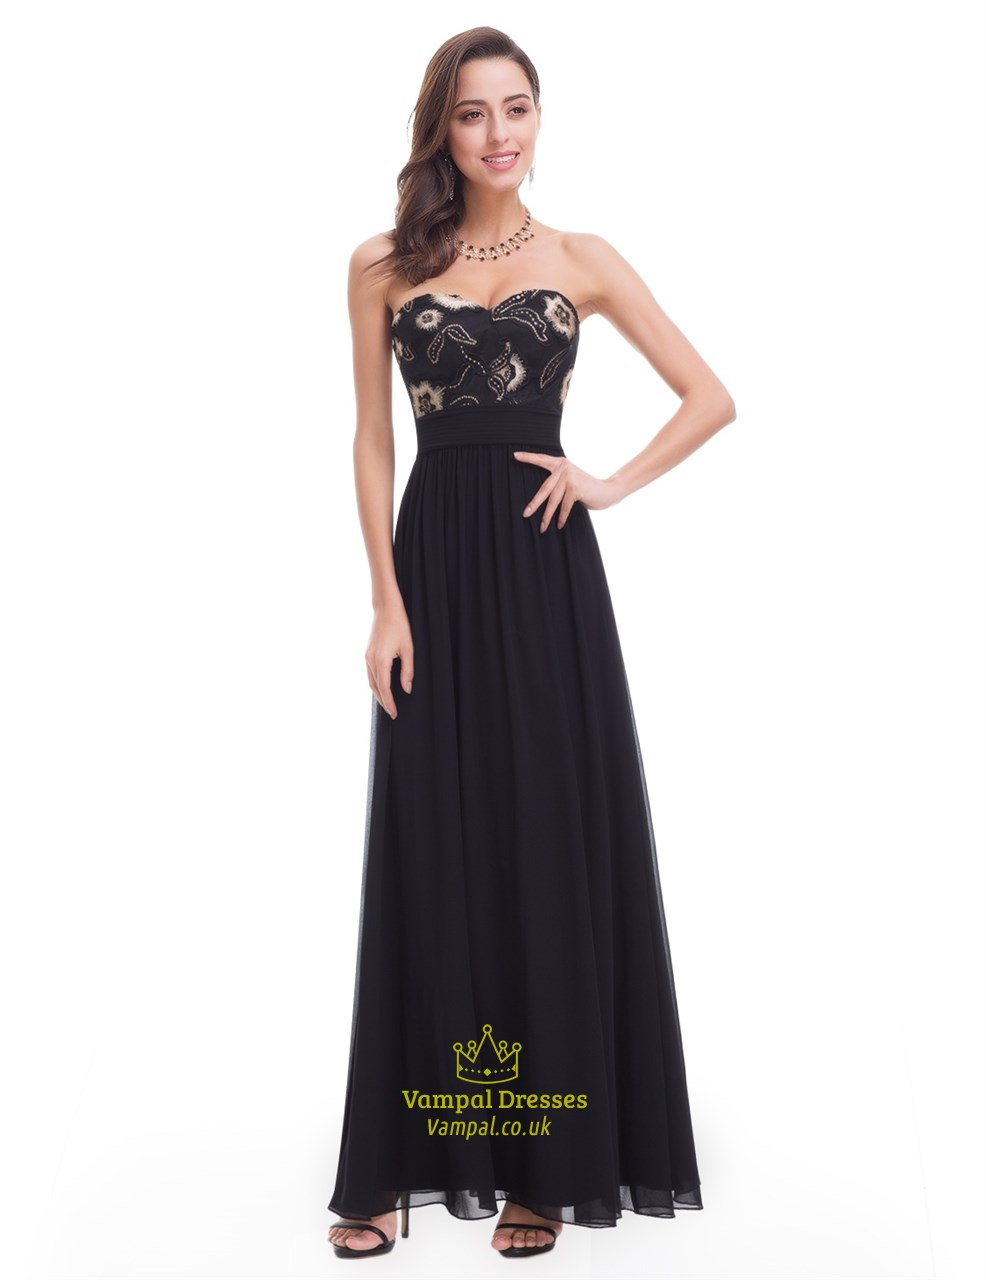 Black Chiffon Sweetheart Neckline Long Prom Dress With Floral ...